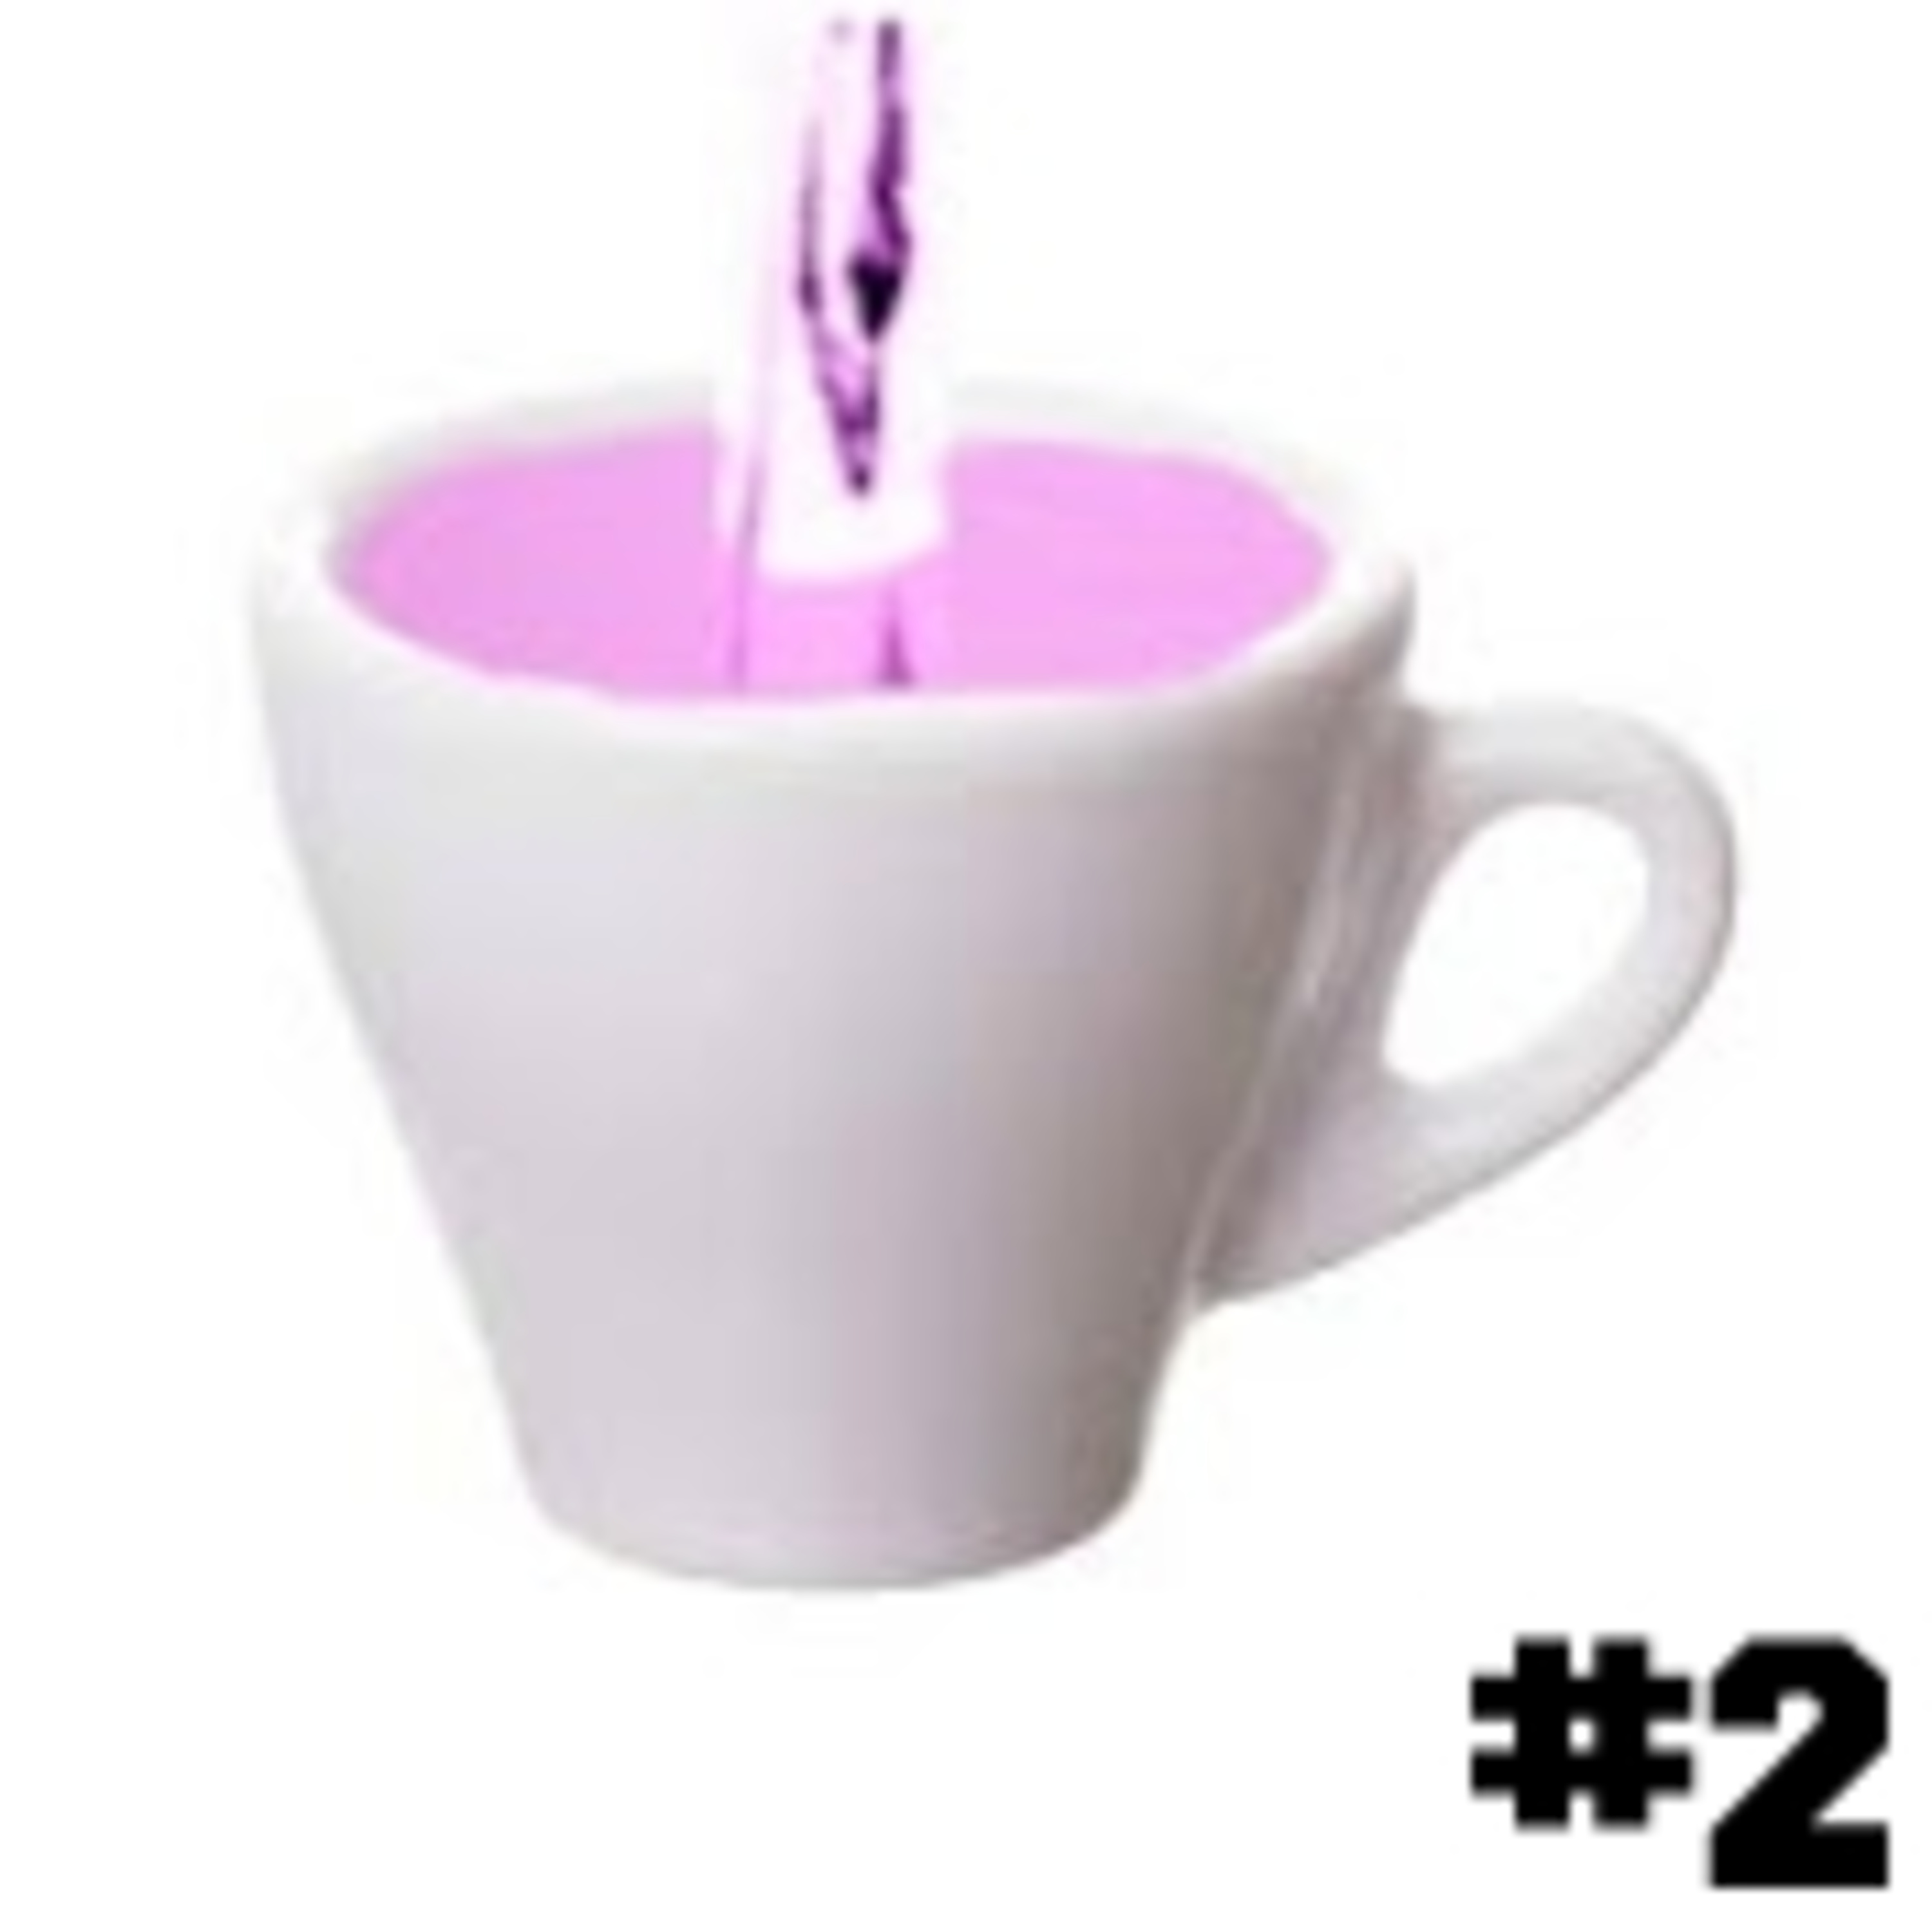 Cancer In A Cup Podcast #2